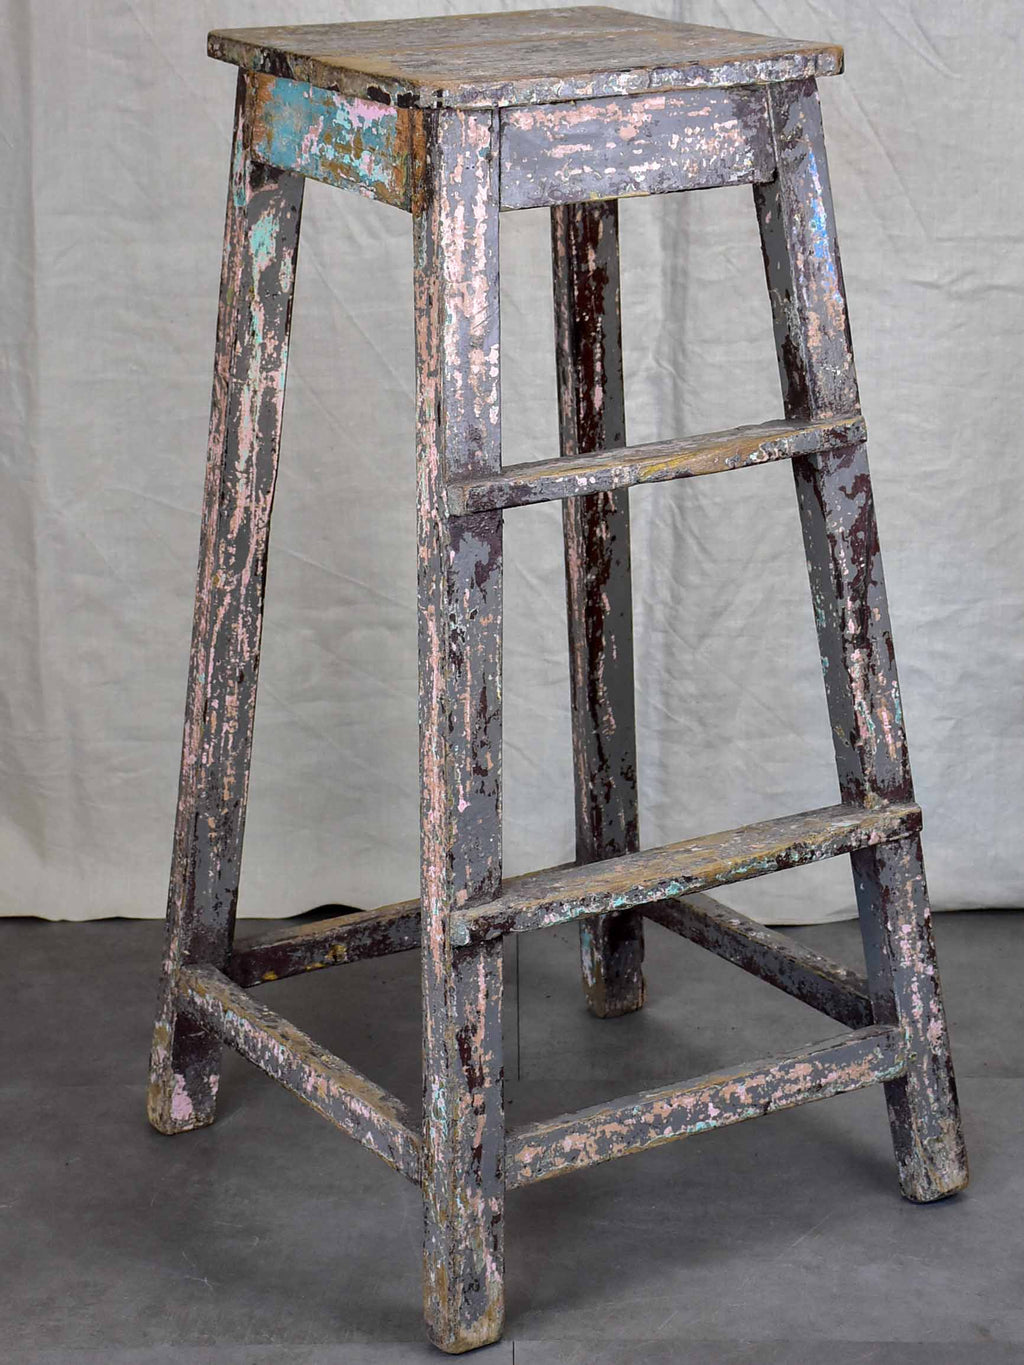 Antique French sculptor's table / high stool - 2 of 2